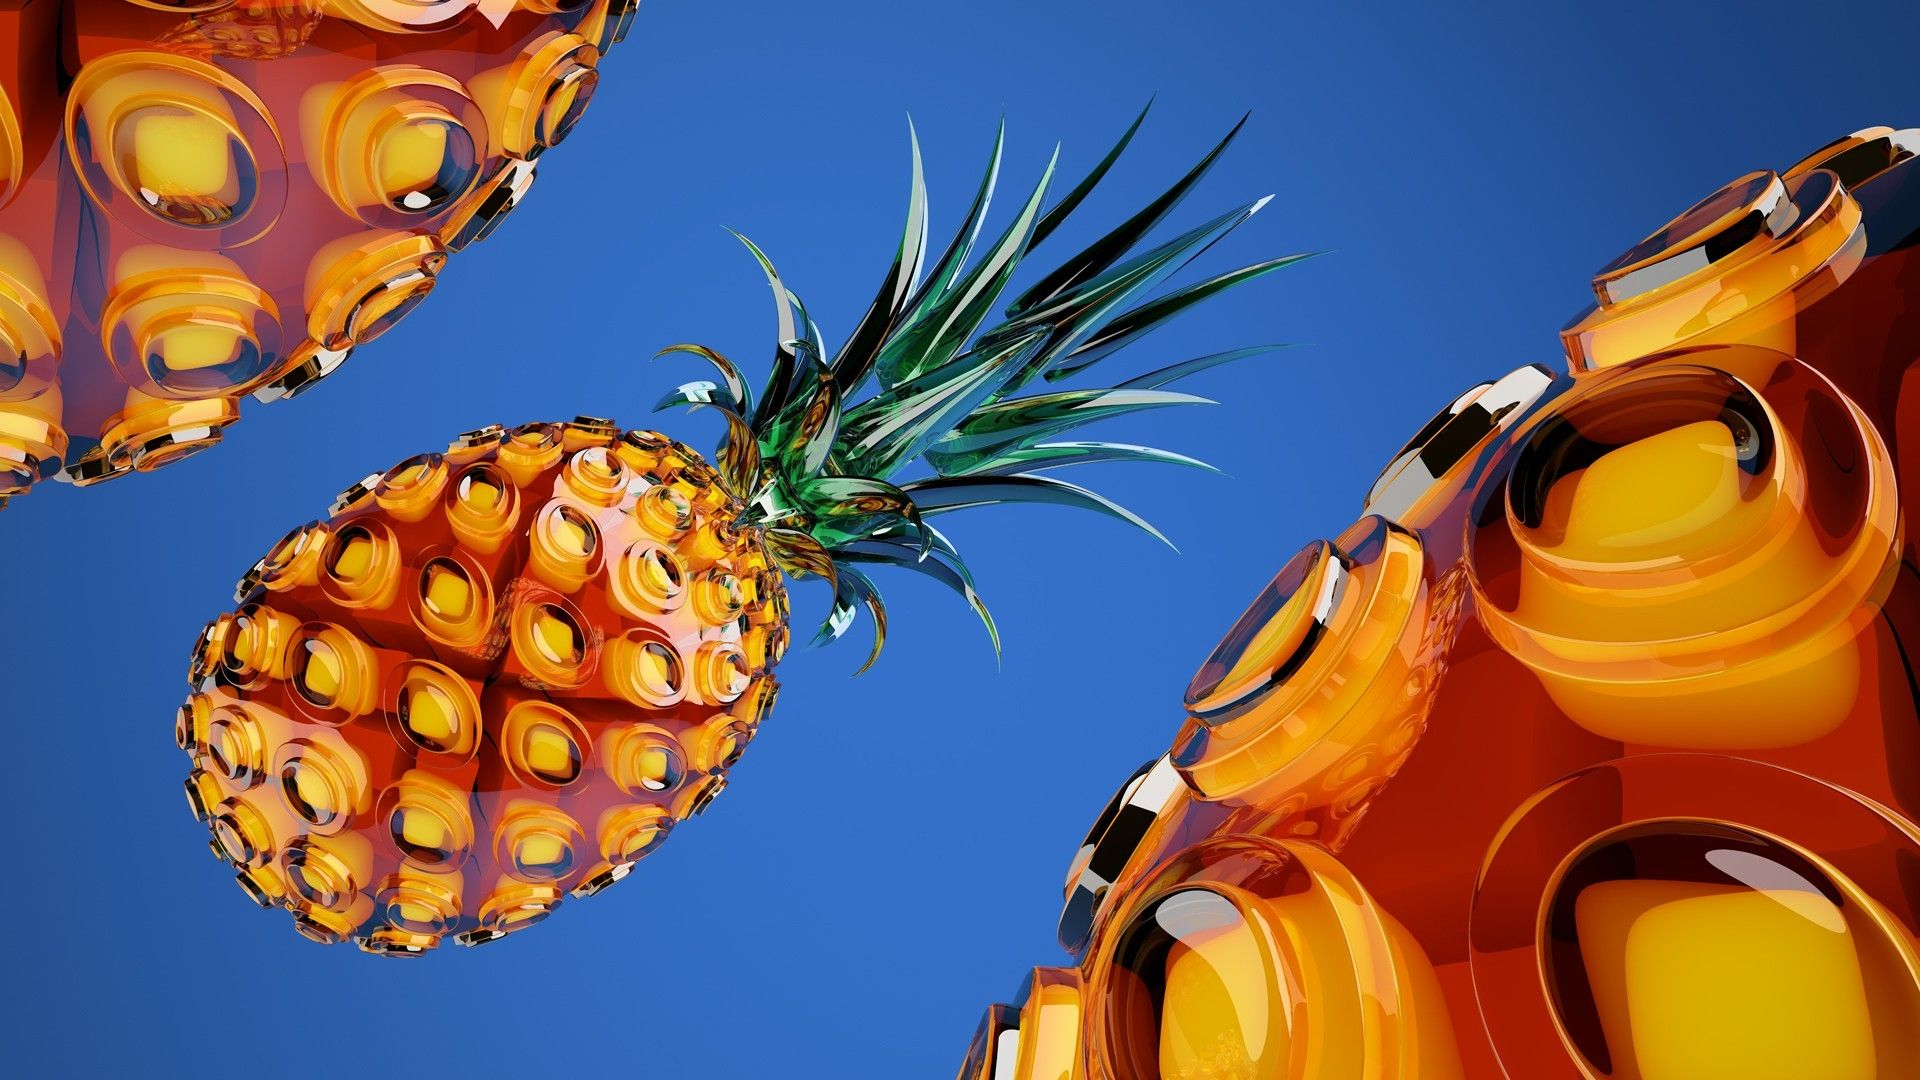 cool pineapple pictures